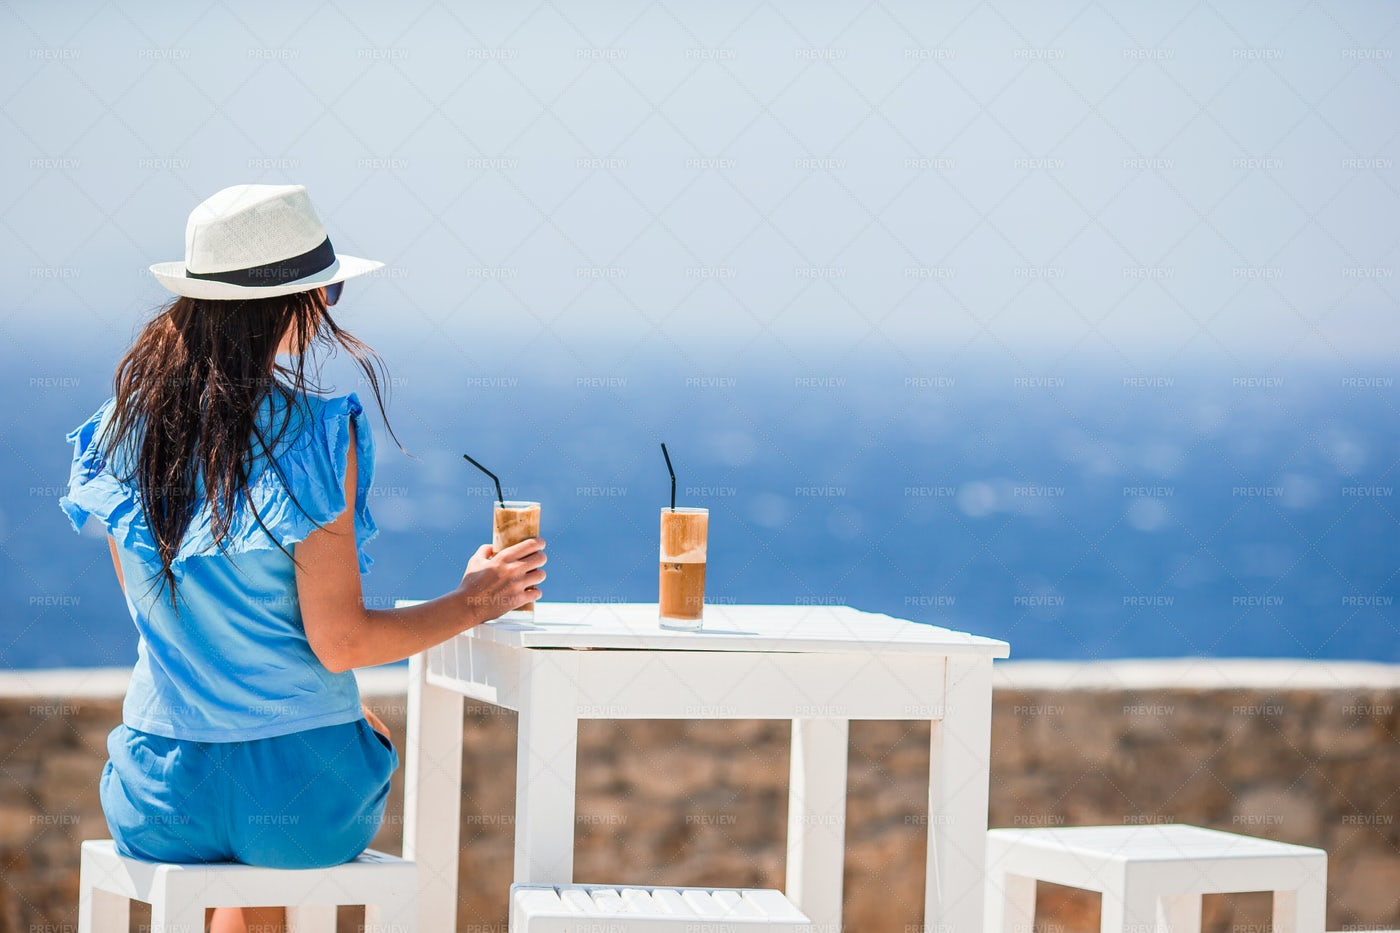 Drinking Cold Coffee: Stock Photos